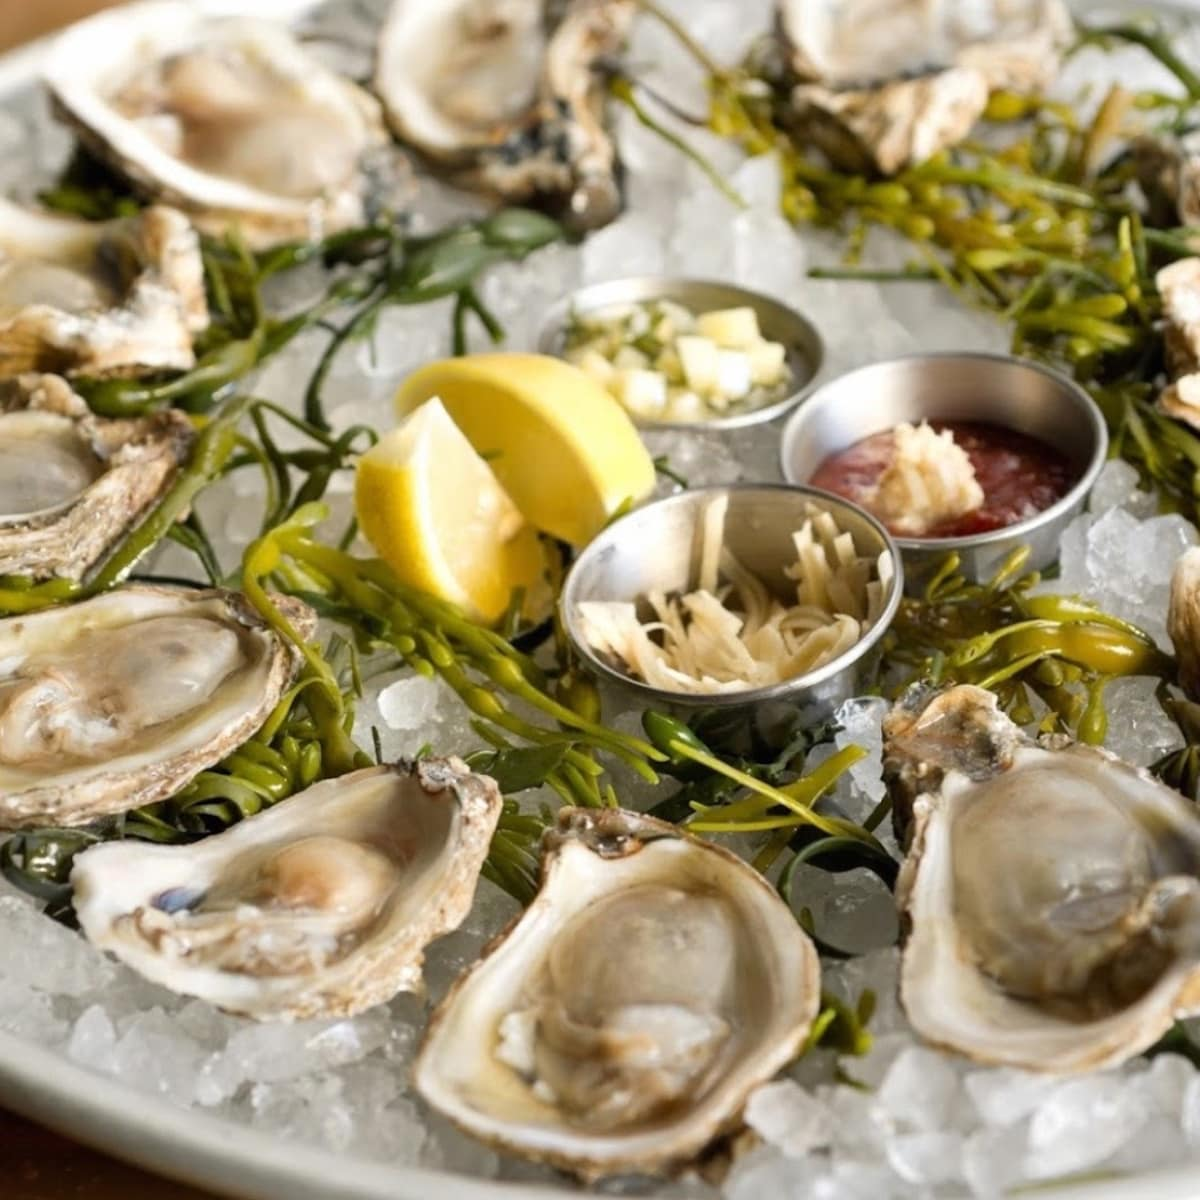 oysters at Oyster Bar at Prohibition